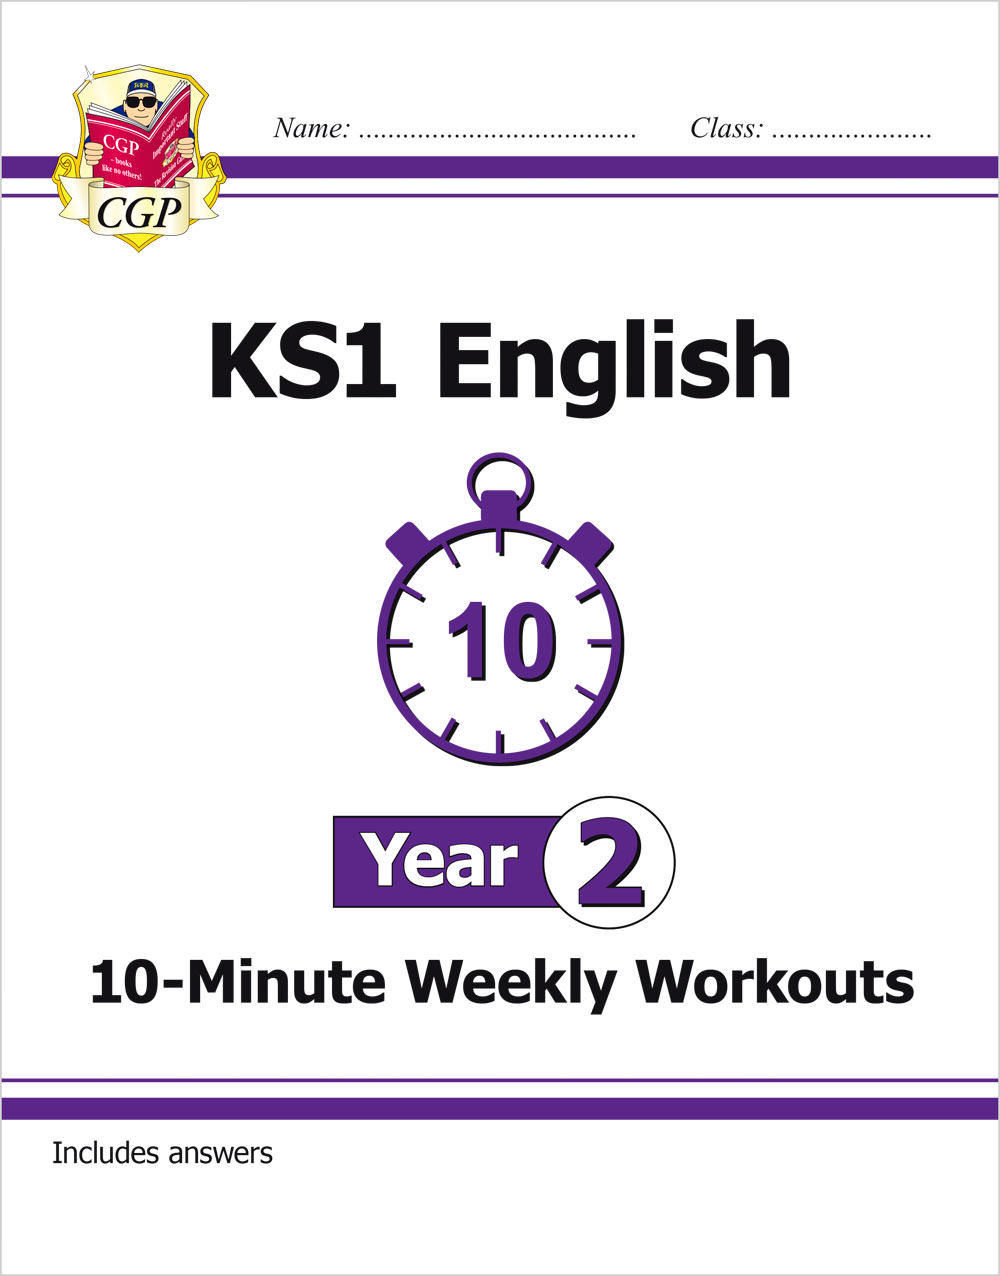 E2XW11 - New KS1 English 10-Minute Weekly Workouts - Year 2